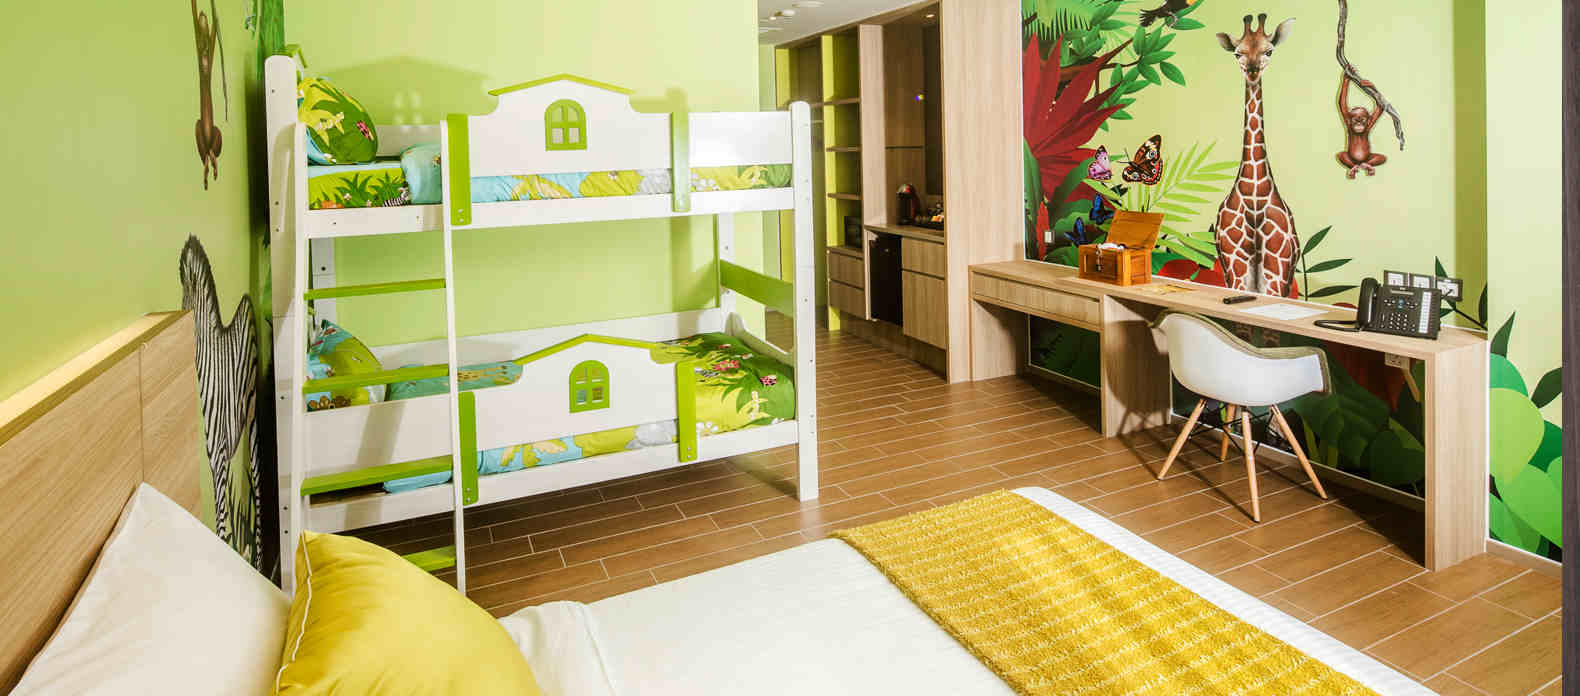 d'resort best holiday destination with family